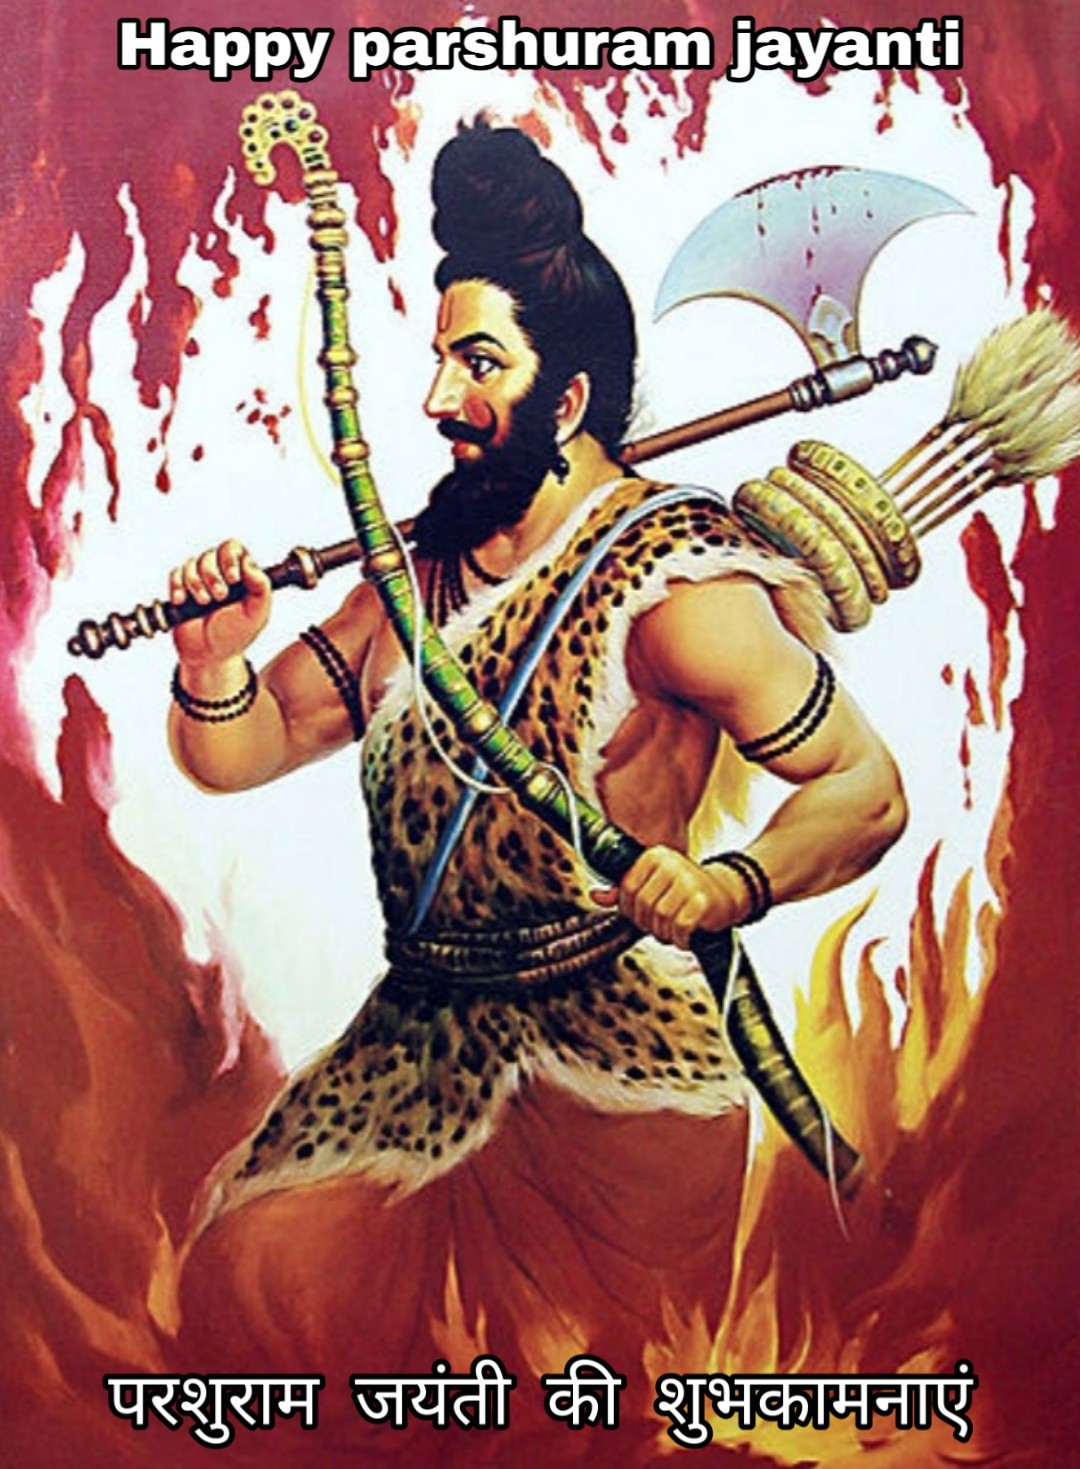 Photo of Parshuram jayanti wishes shayari quotes messages